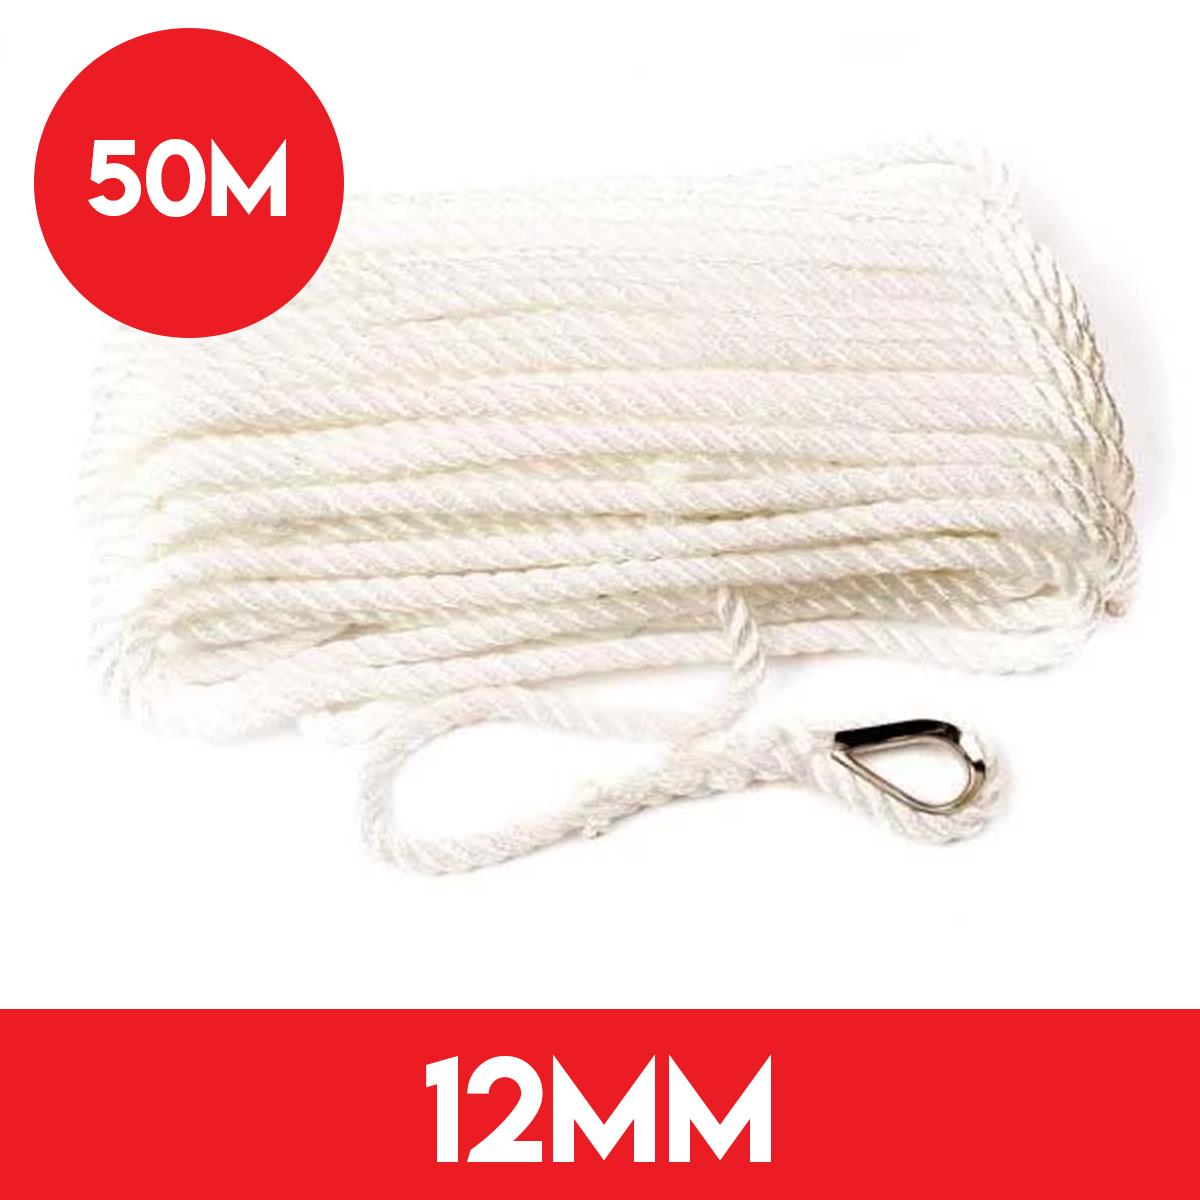 12mm Pre Spliced Anchor Line - 50 Meters